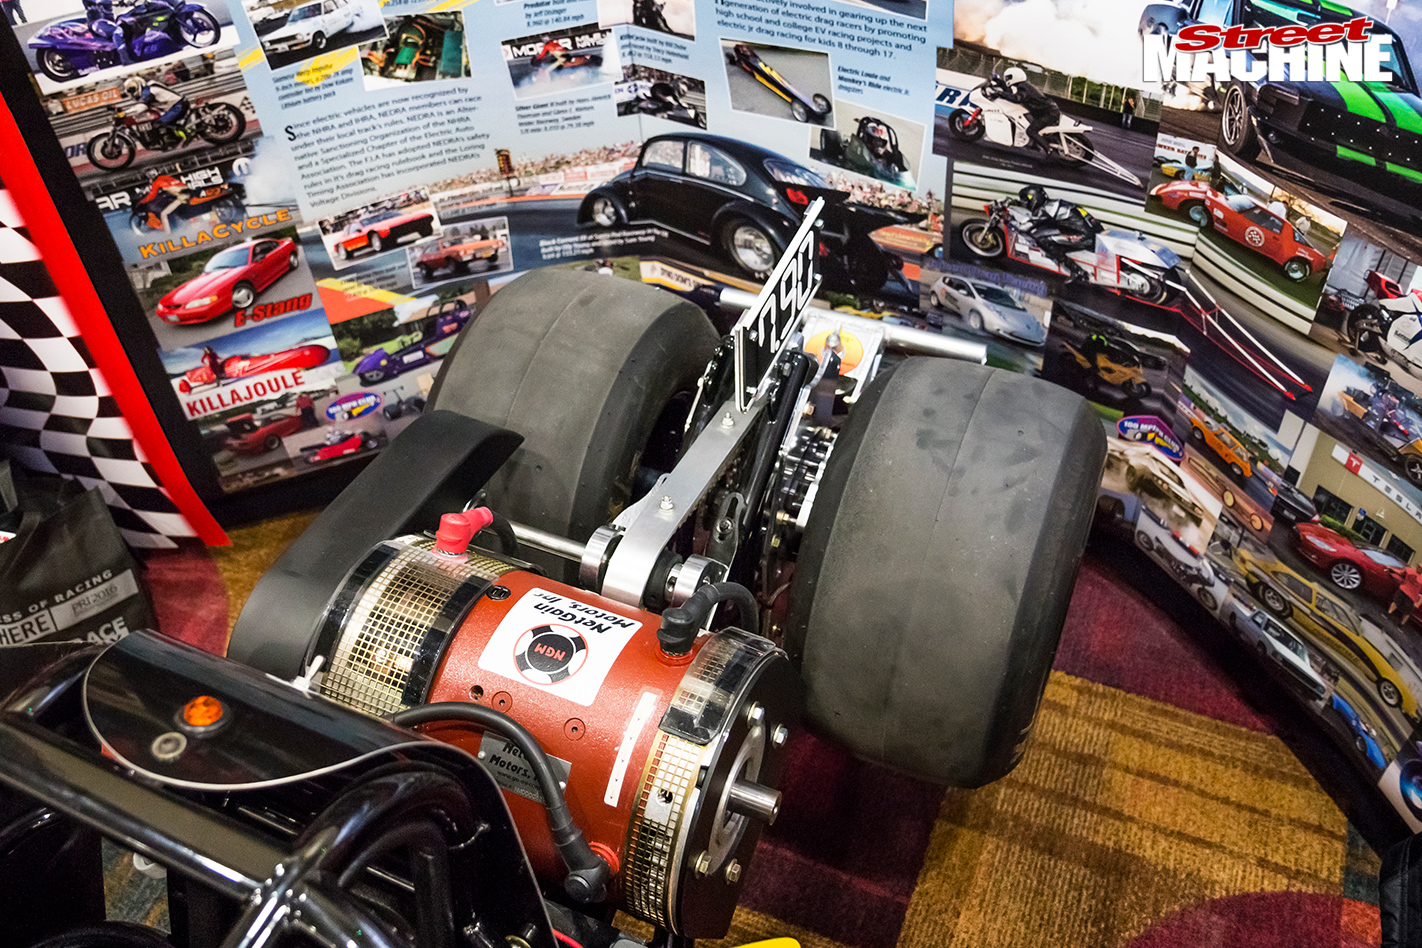 6450-pri -show -nedra -electric -dragster